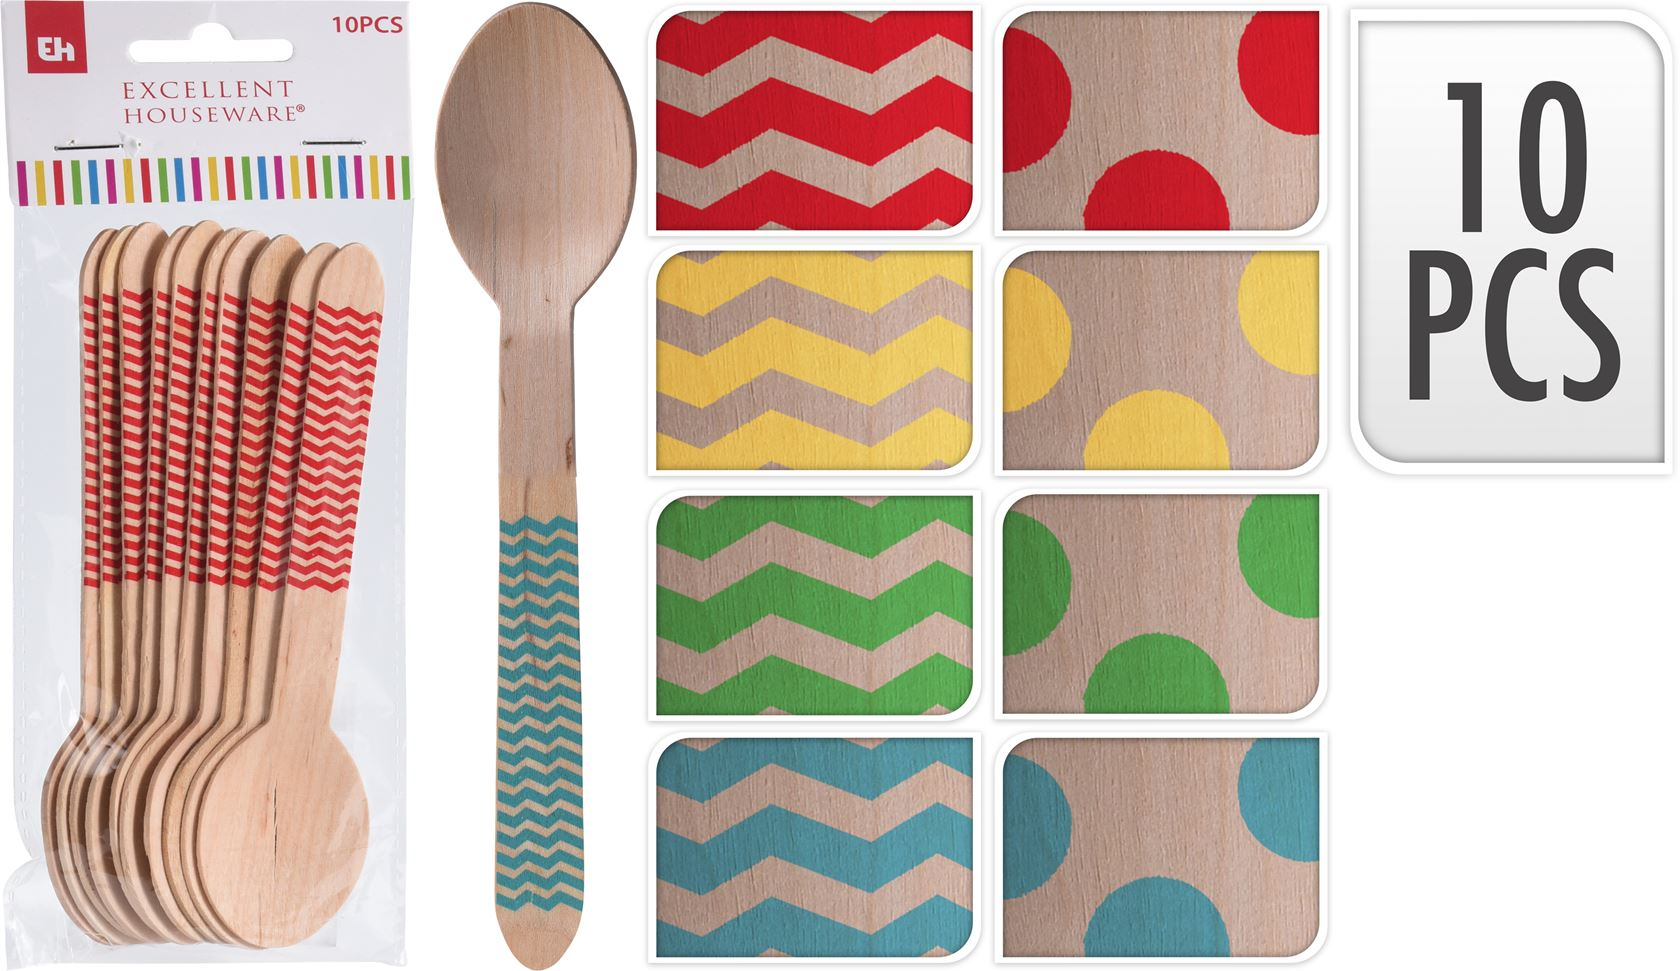 lepel hout (10sts)